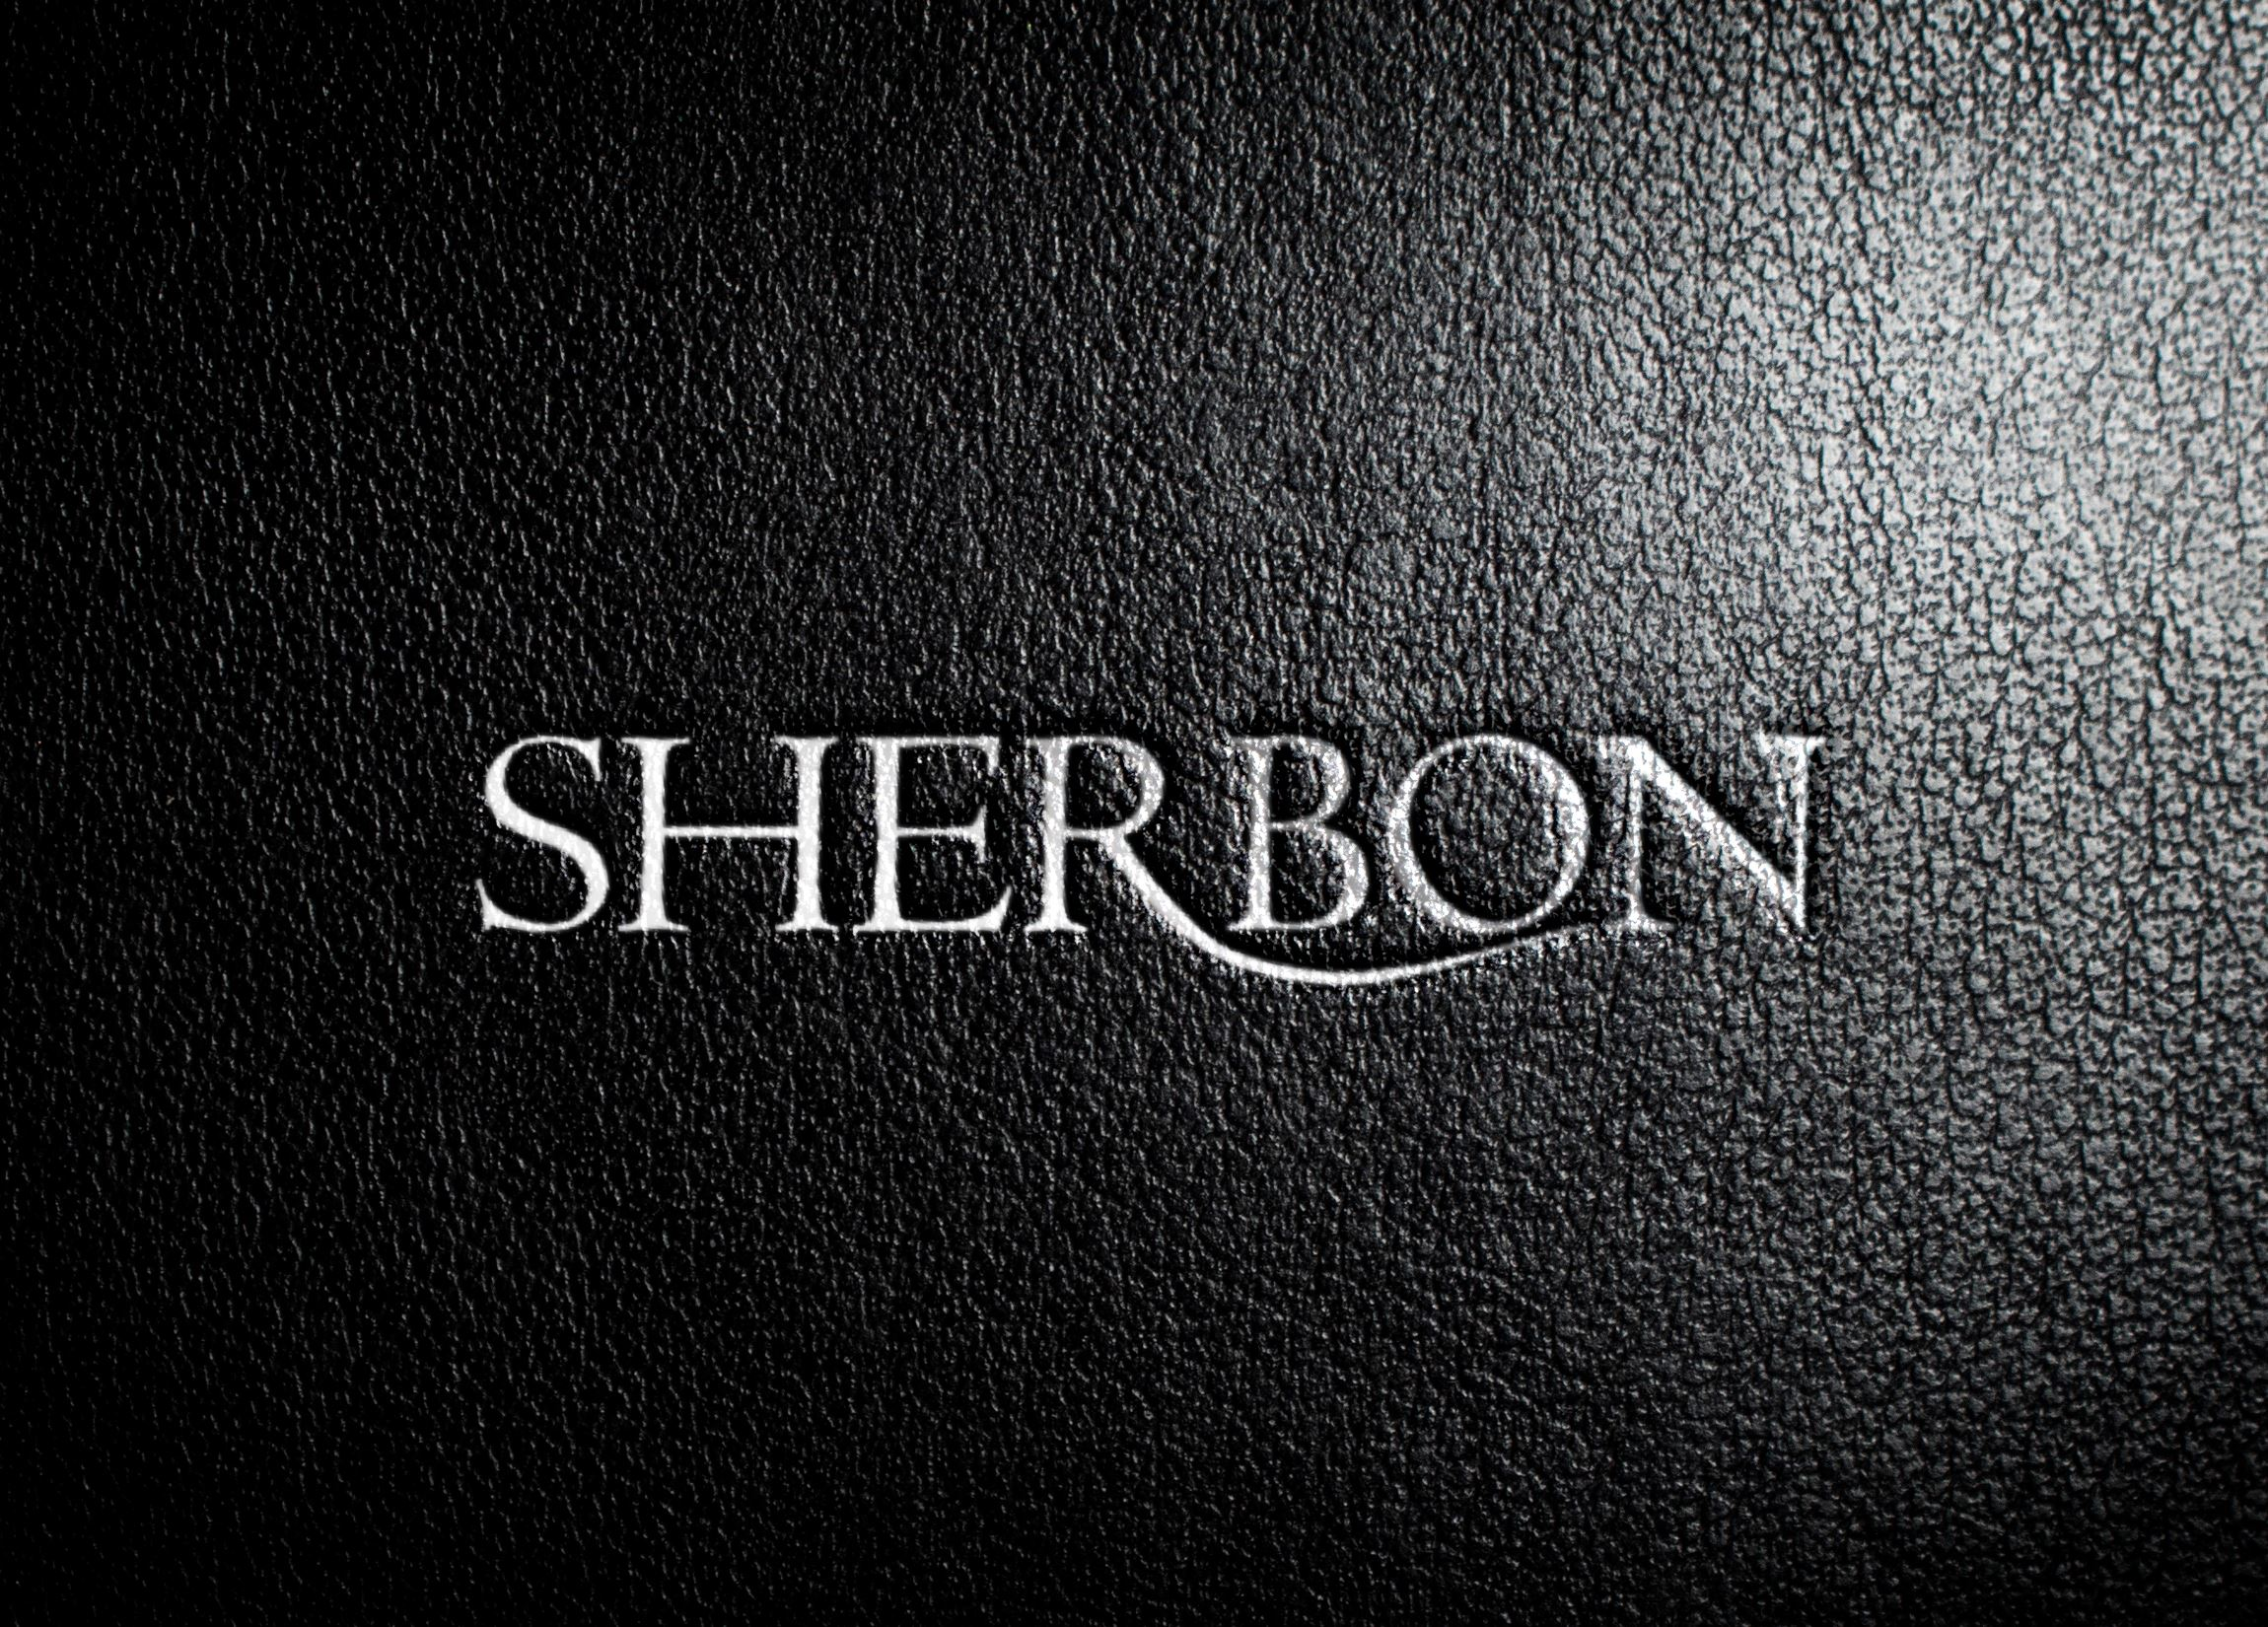 Sherbon logo presentation (Custom clothes brand)